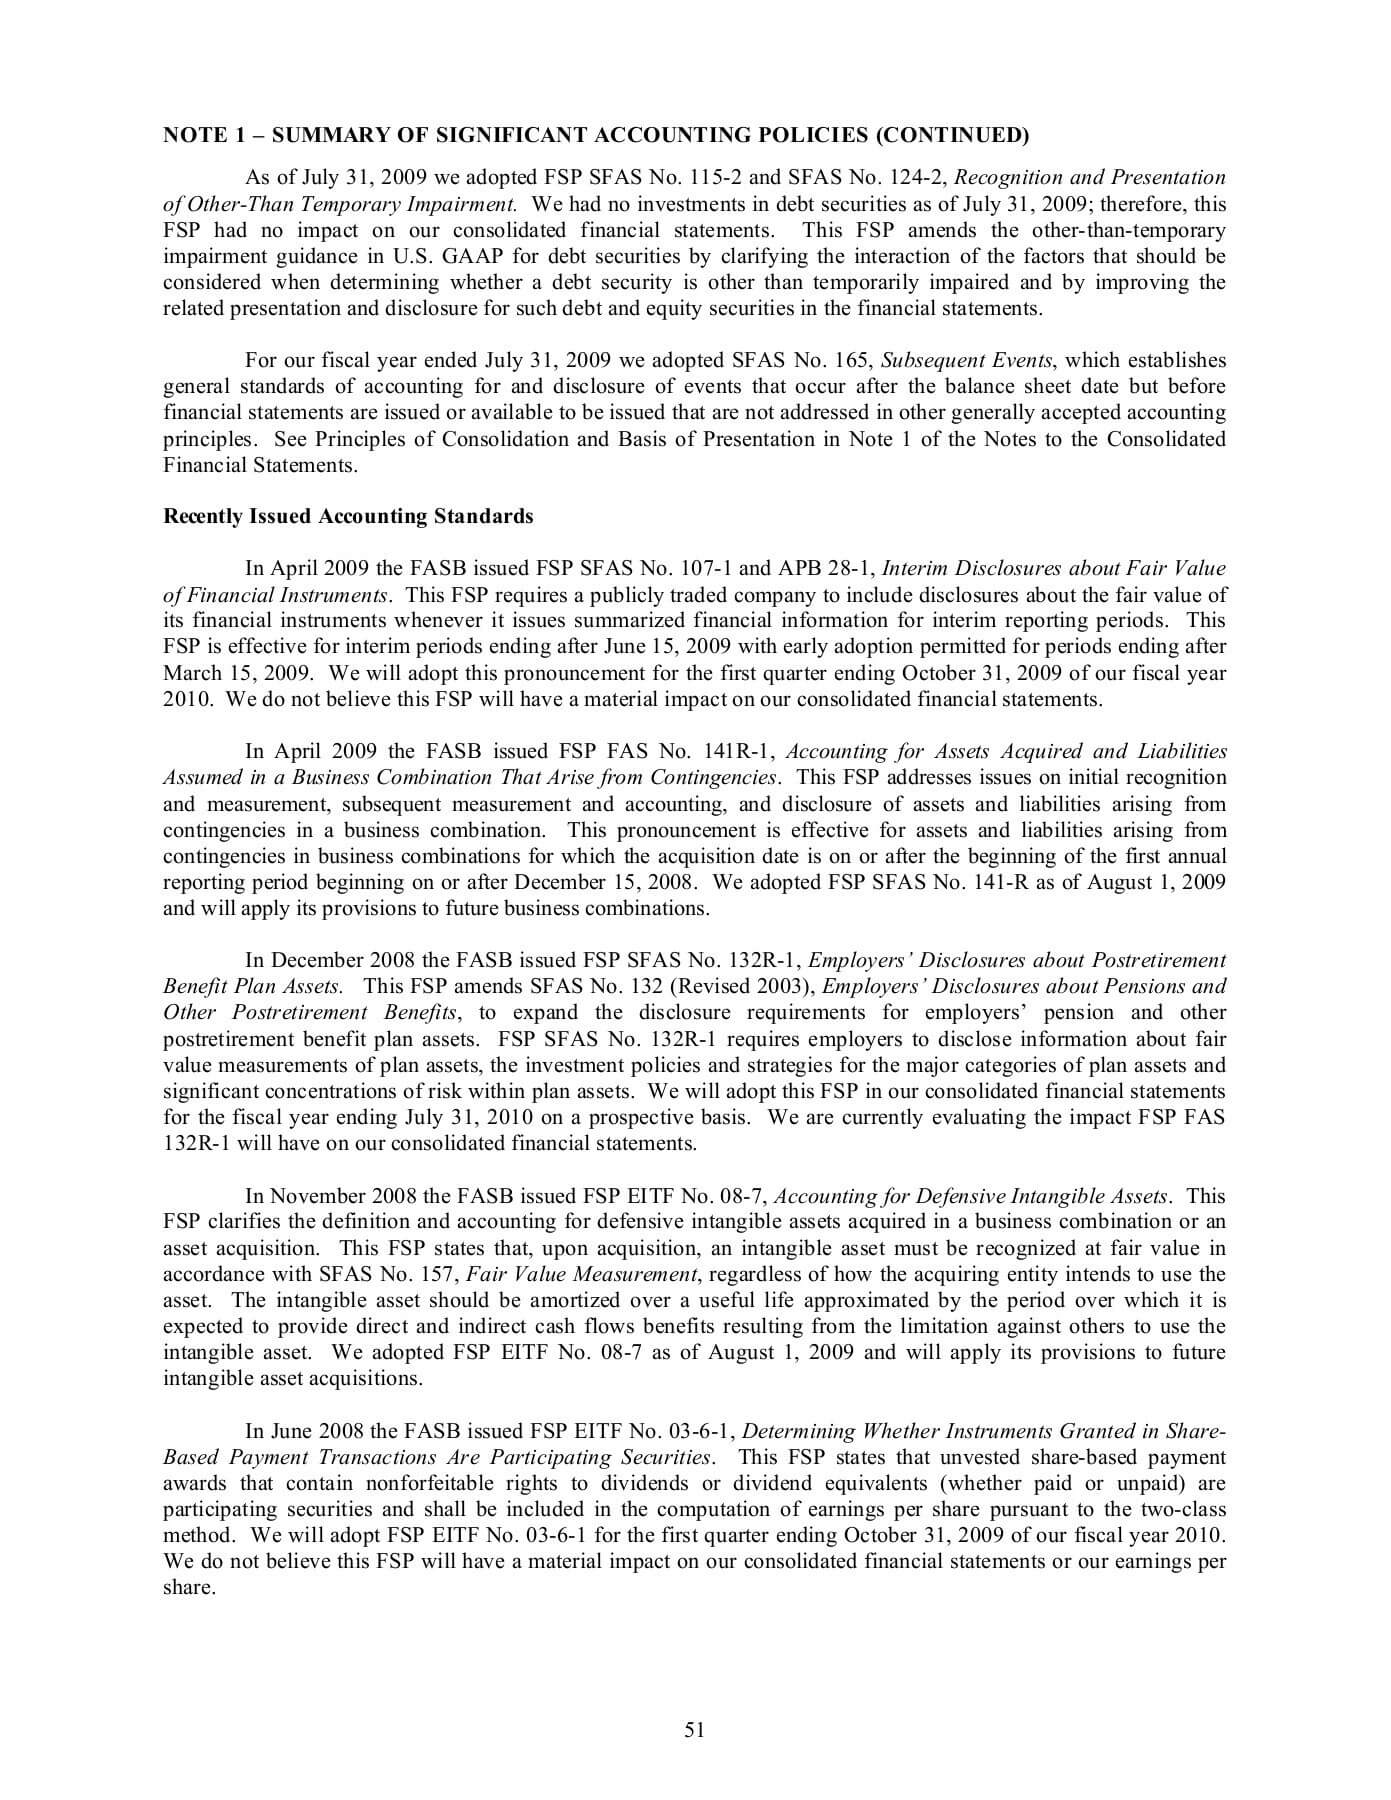 10 Annual Report Cover Letter Sample | Cover Letter with Summary Annual Report Template